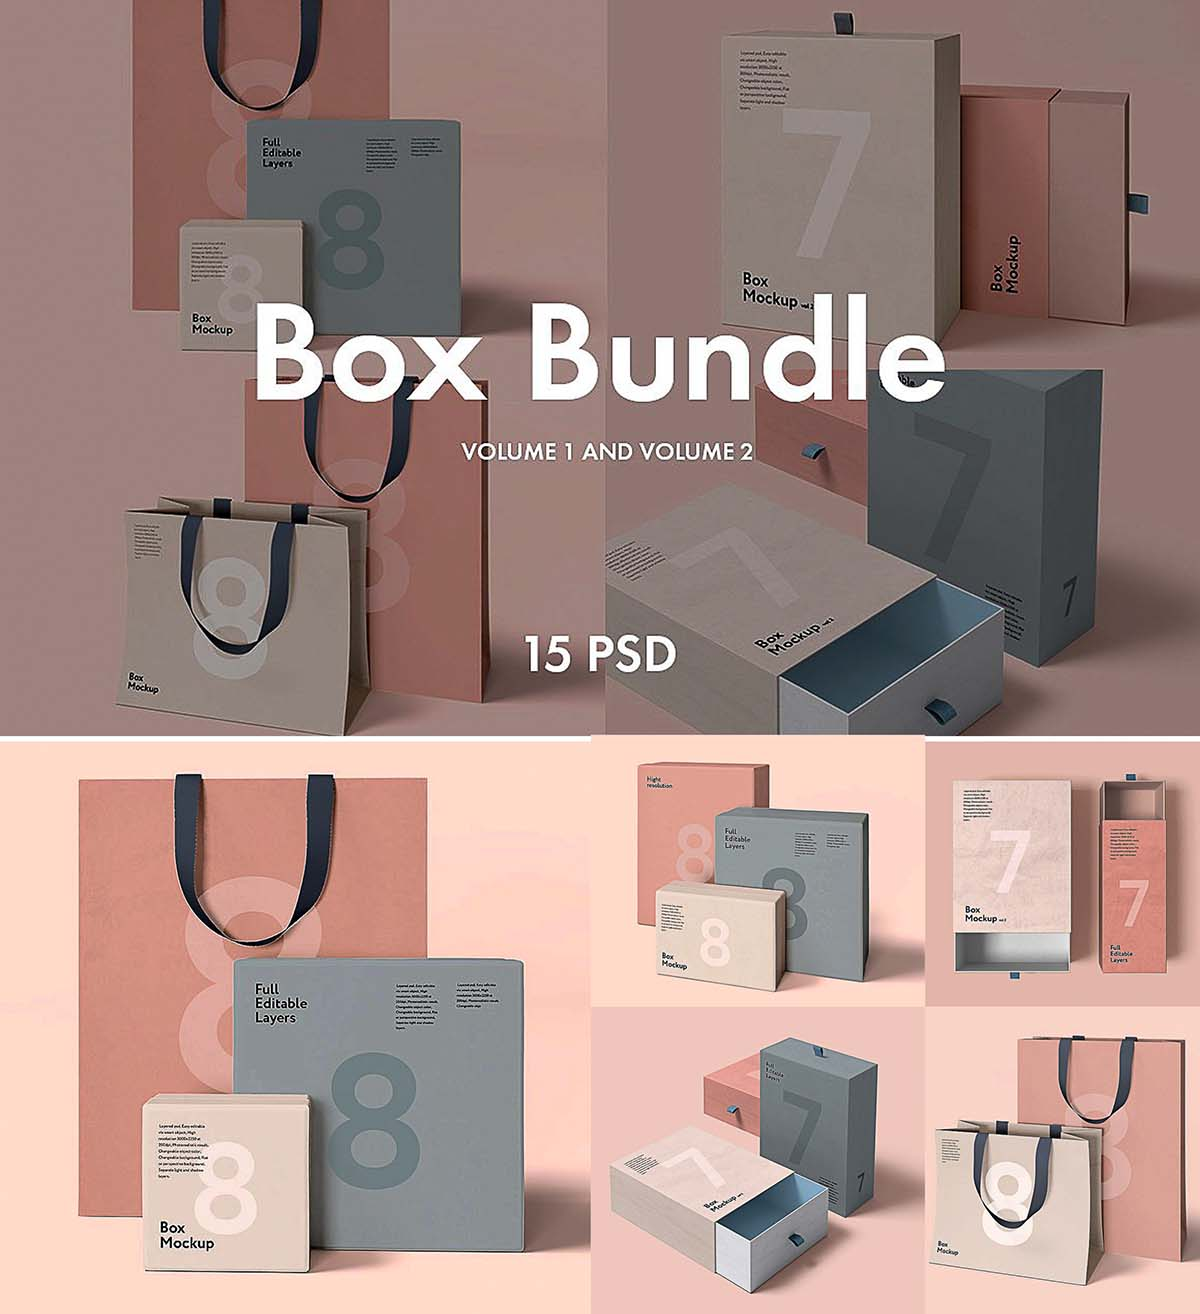 Box and bag mockup